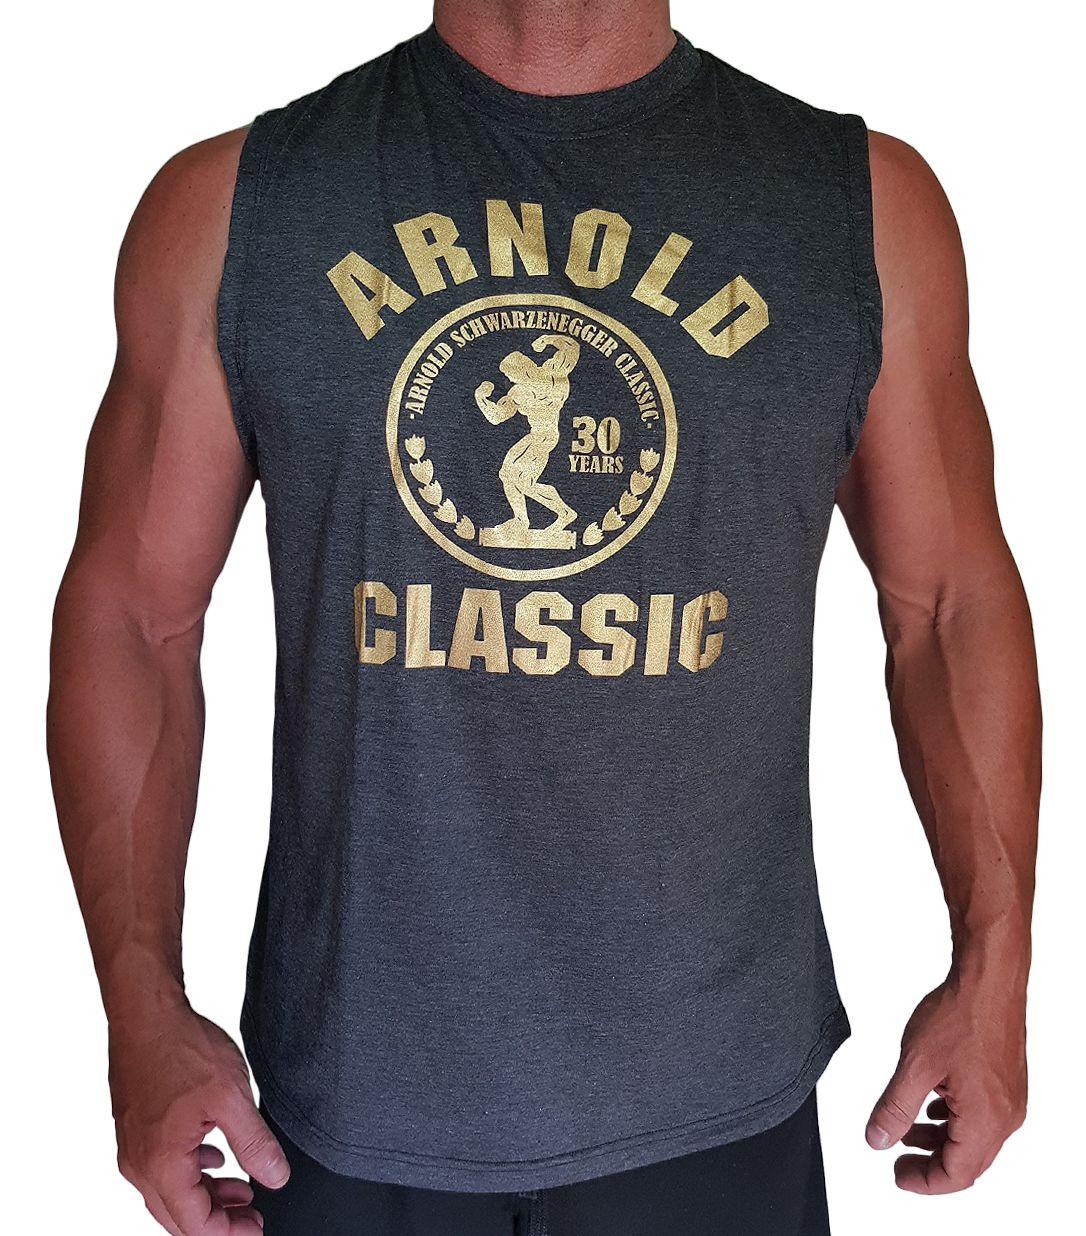 8a1ad279eed6c Muscleman Gear Arnold Classic Men s Stringer Tank Tops. Available On Amazon  Price   15.95